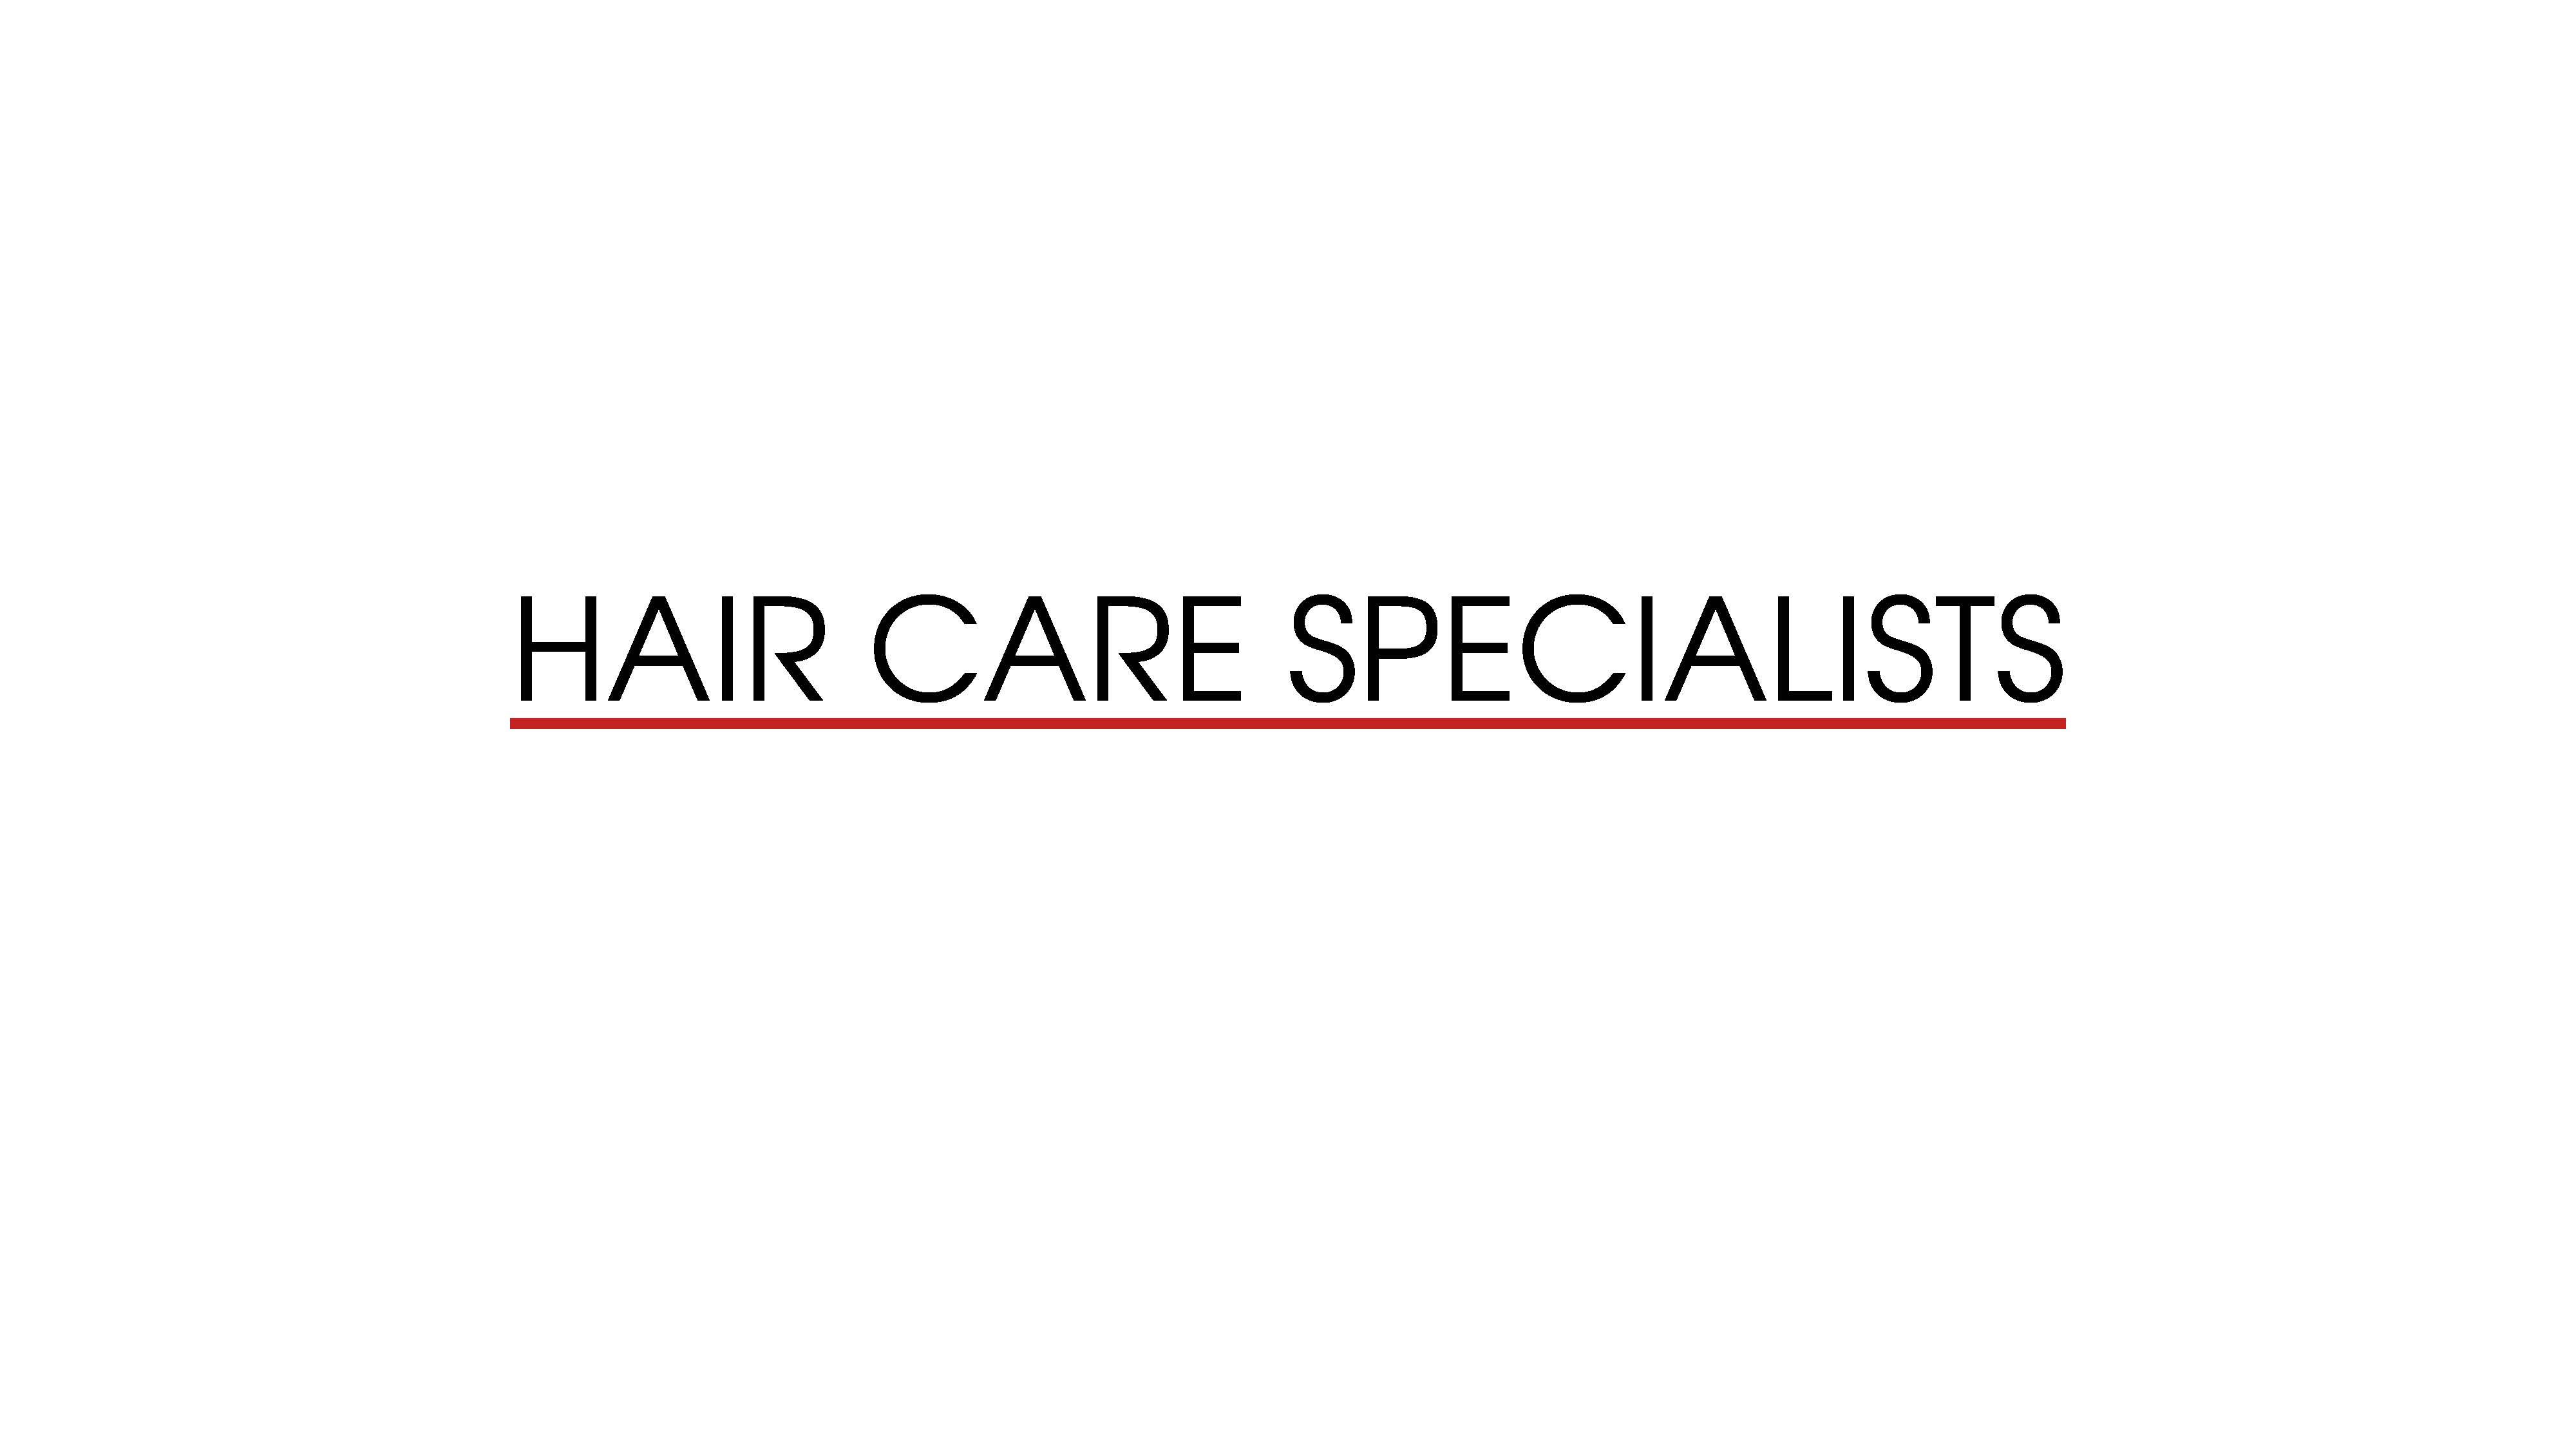 HAIR CARE SPECIALISTS immagine